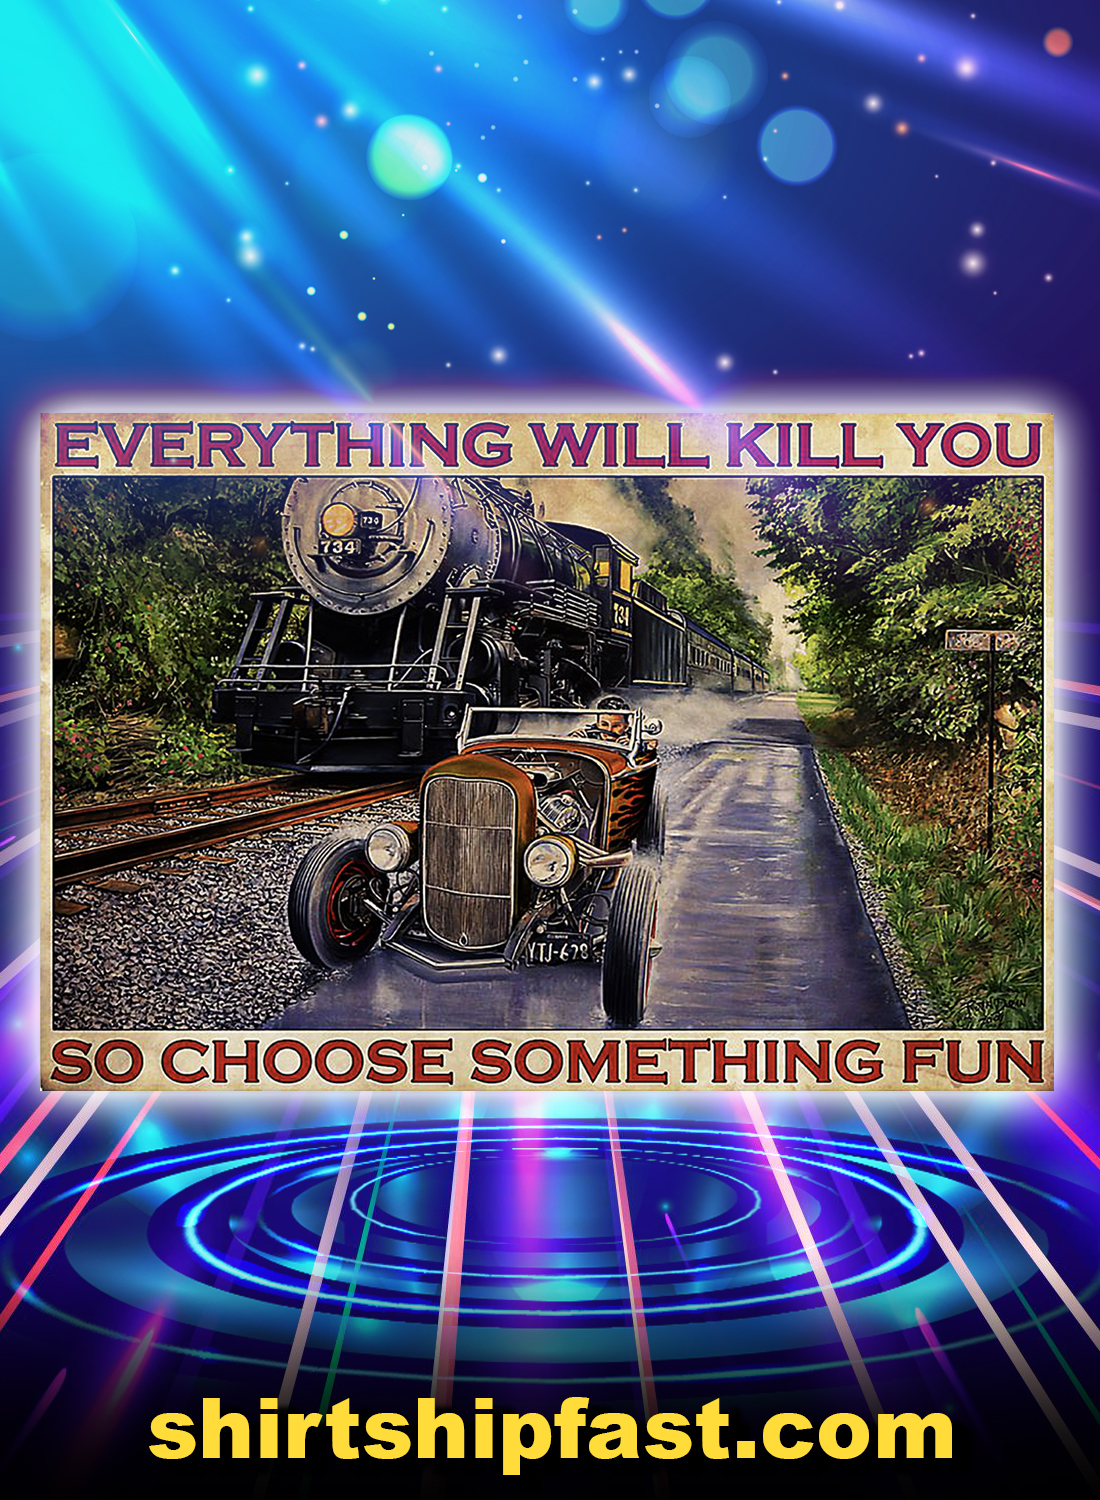 Hot rod car and train racing everything will kill you so choose something fun poster